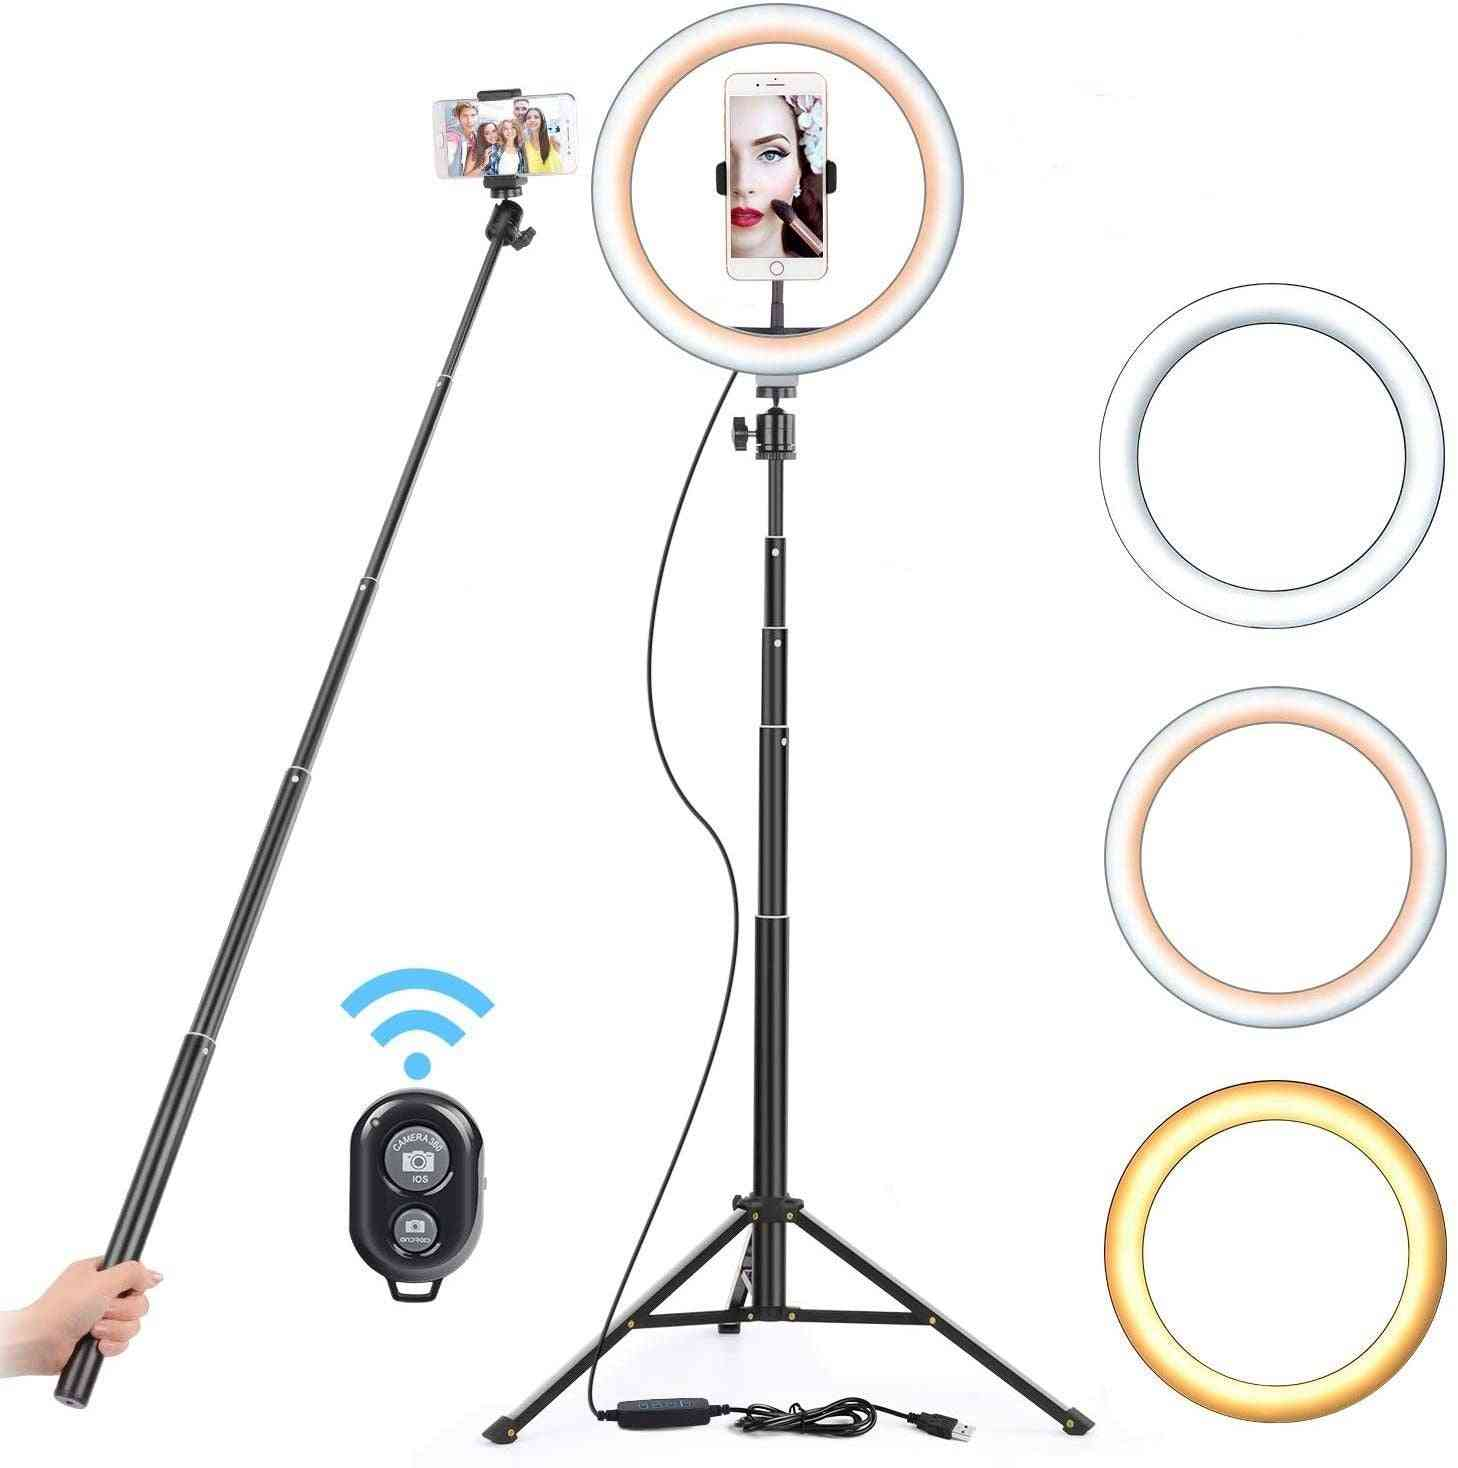 Usb Led Light Ring Photography Flash Lamp With 130cm Tripod Stand